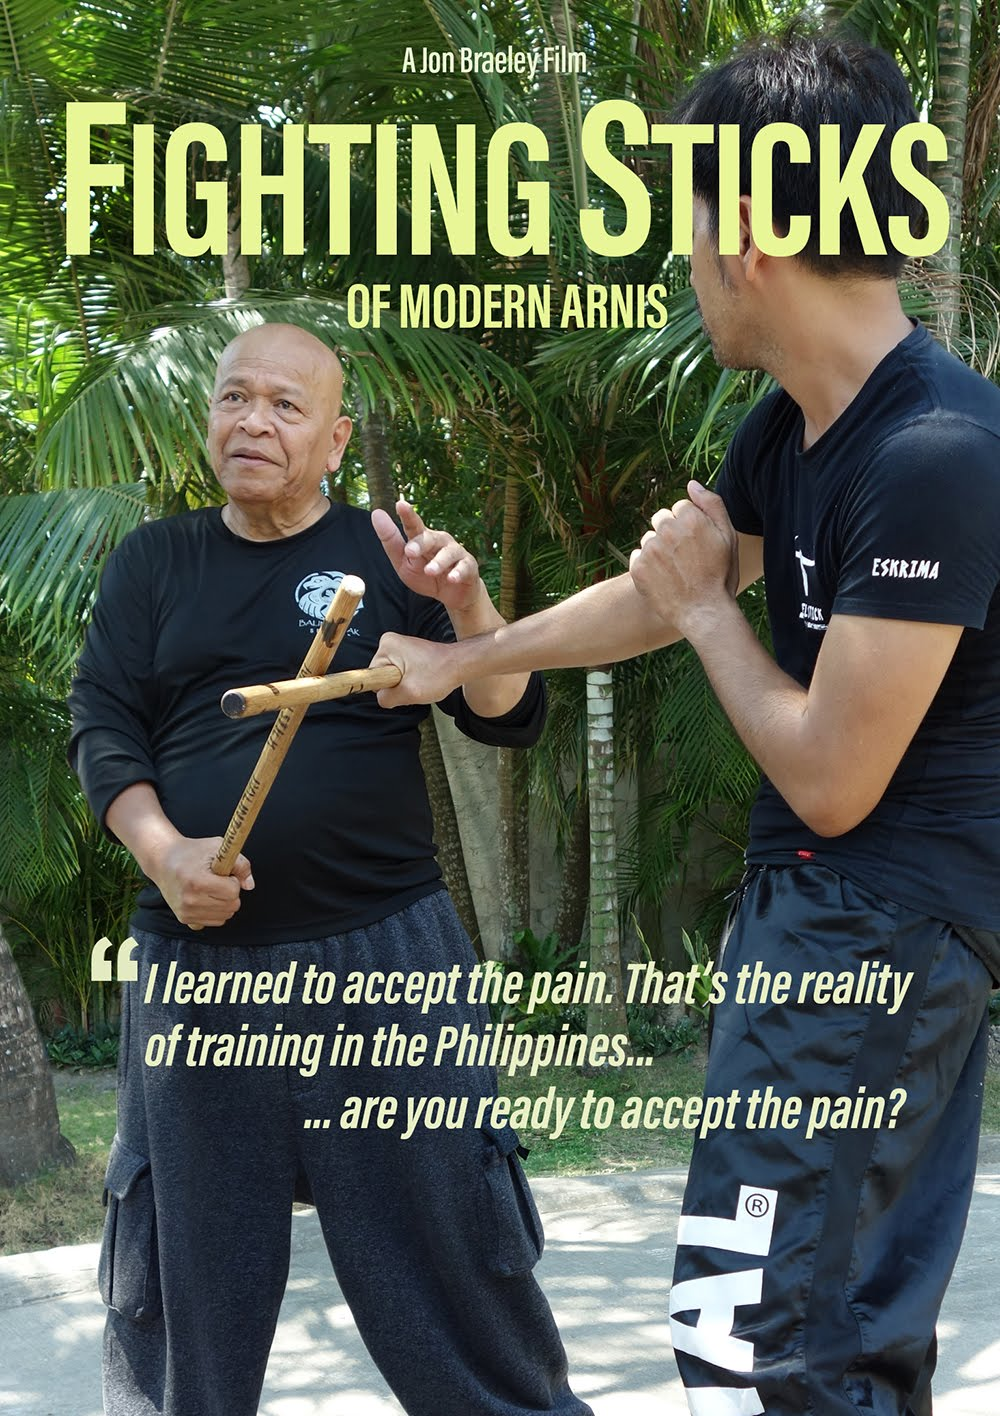 FIGHTING STICKS OF MODERN ARNIS